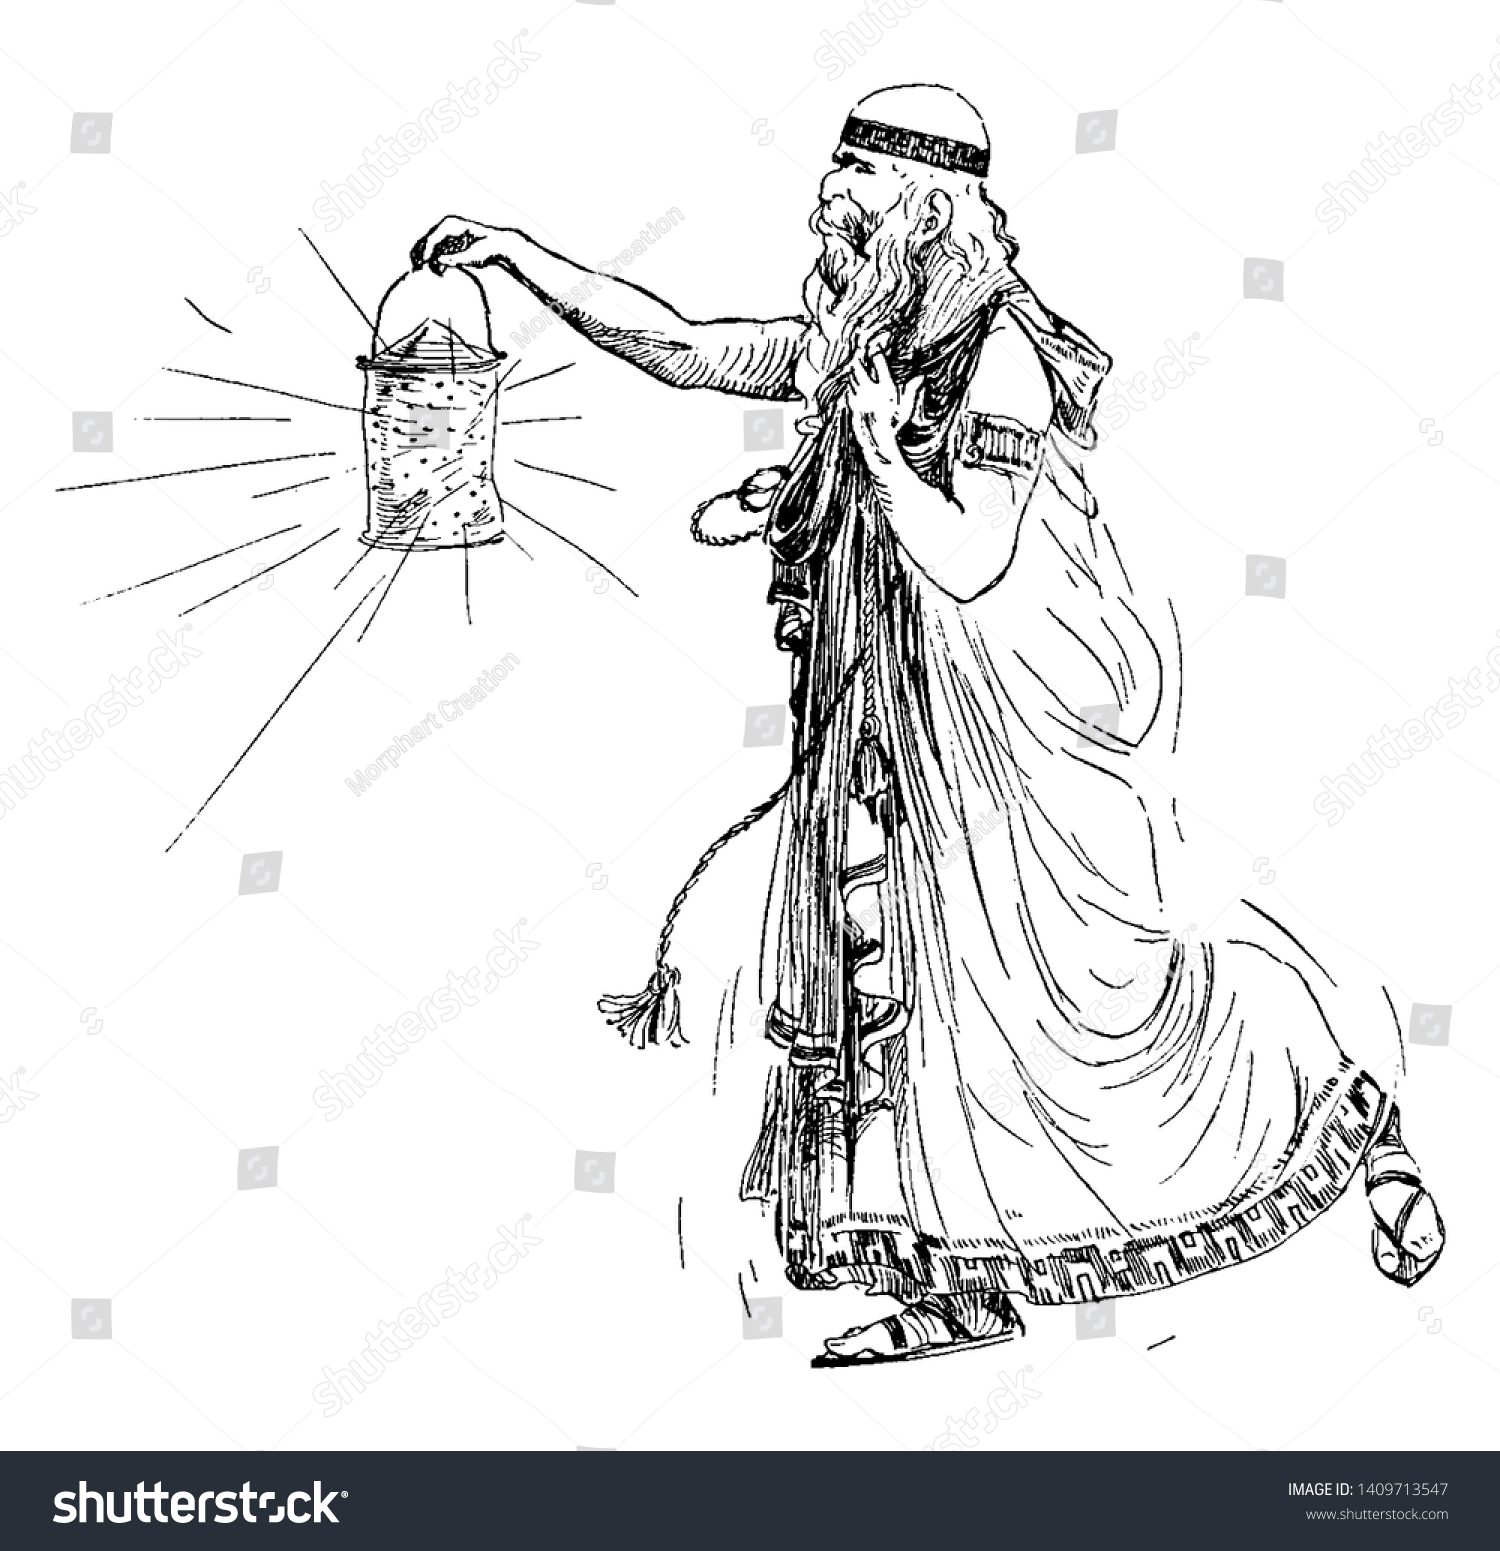 Old Man Lantern Vintage Line Drawing Stock Vector Royalty Free 1409713547